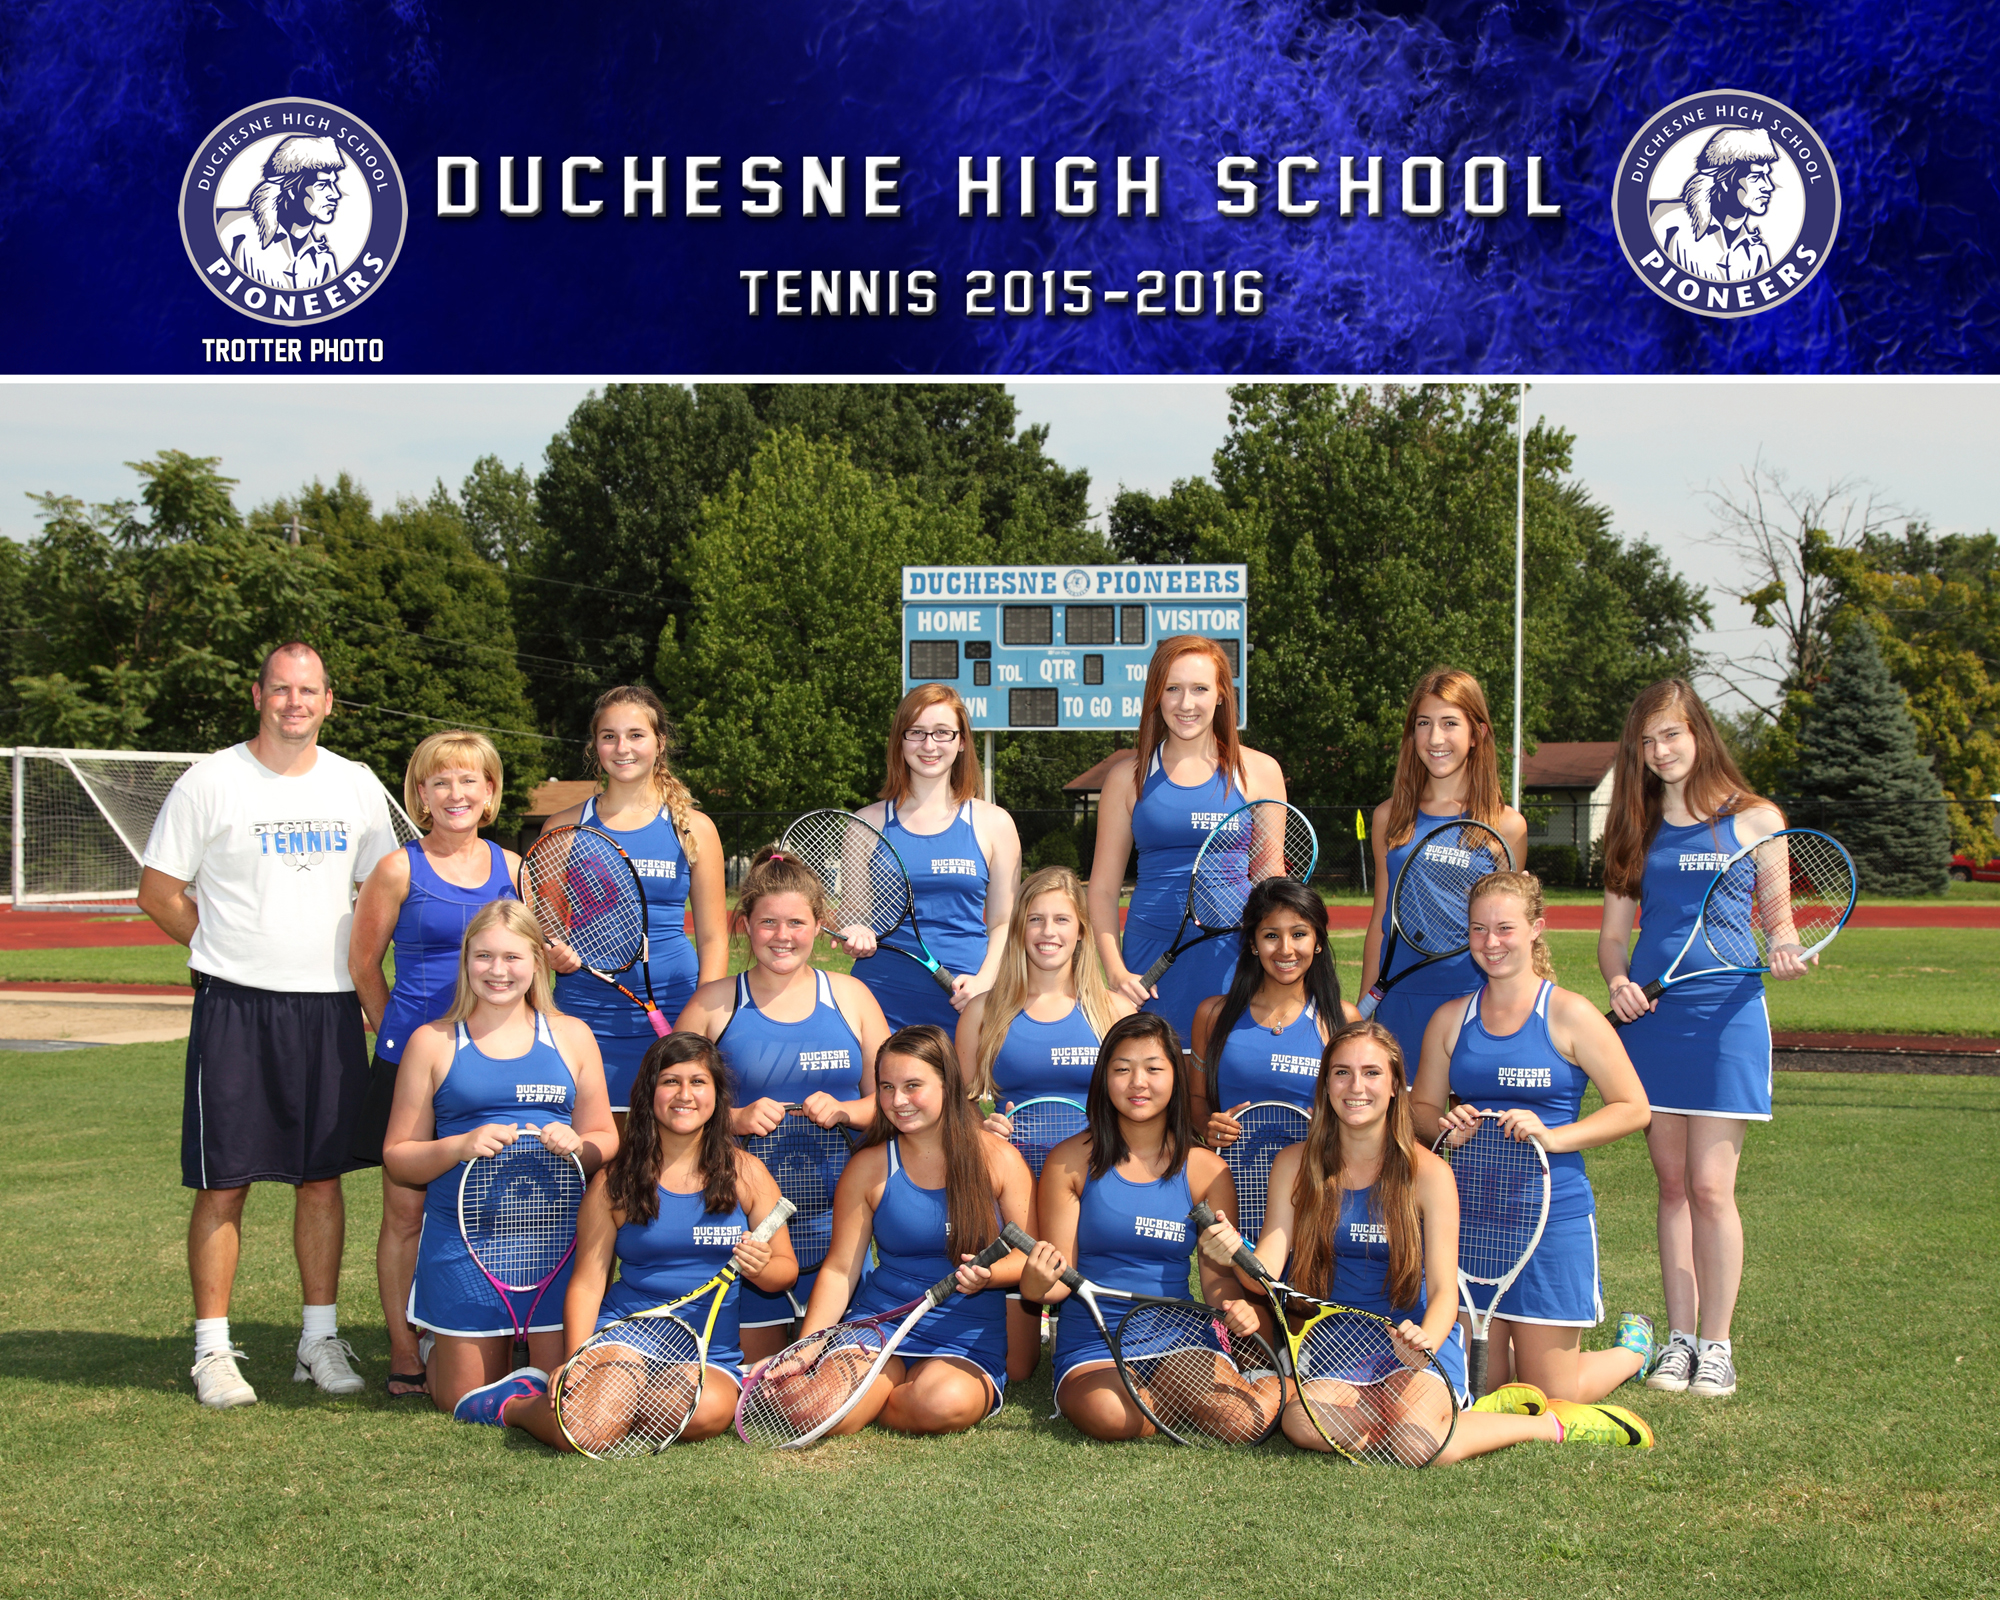 Duchesne High School Soccer Schedule Duchesne High School Girls Tennis